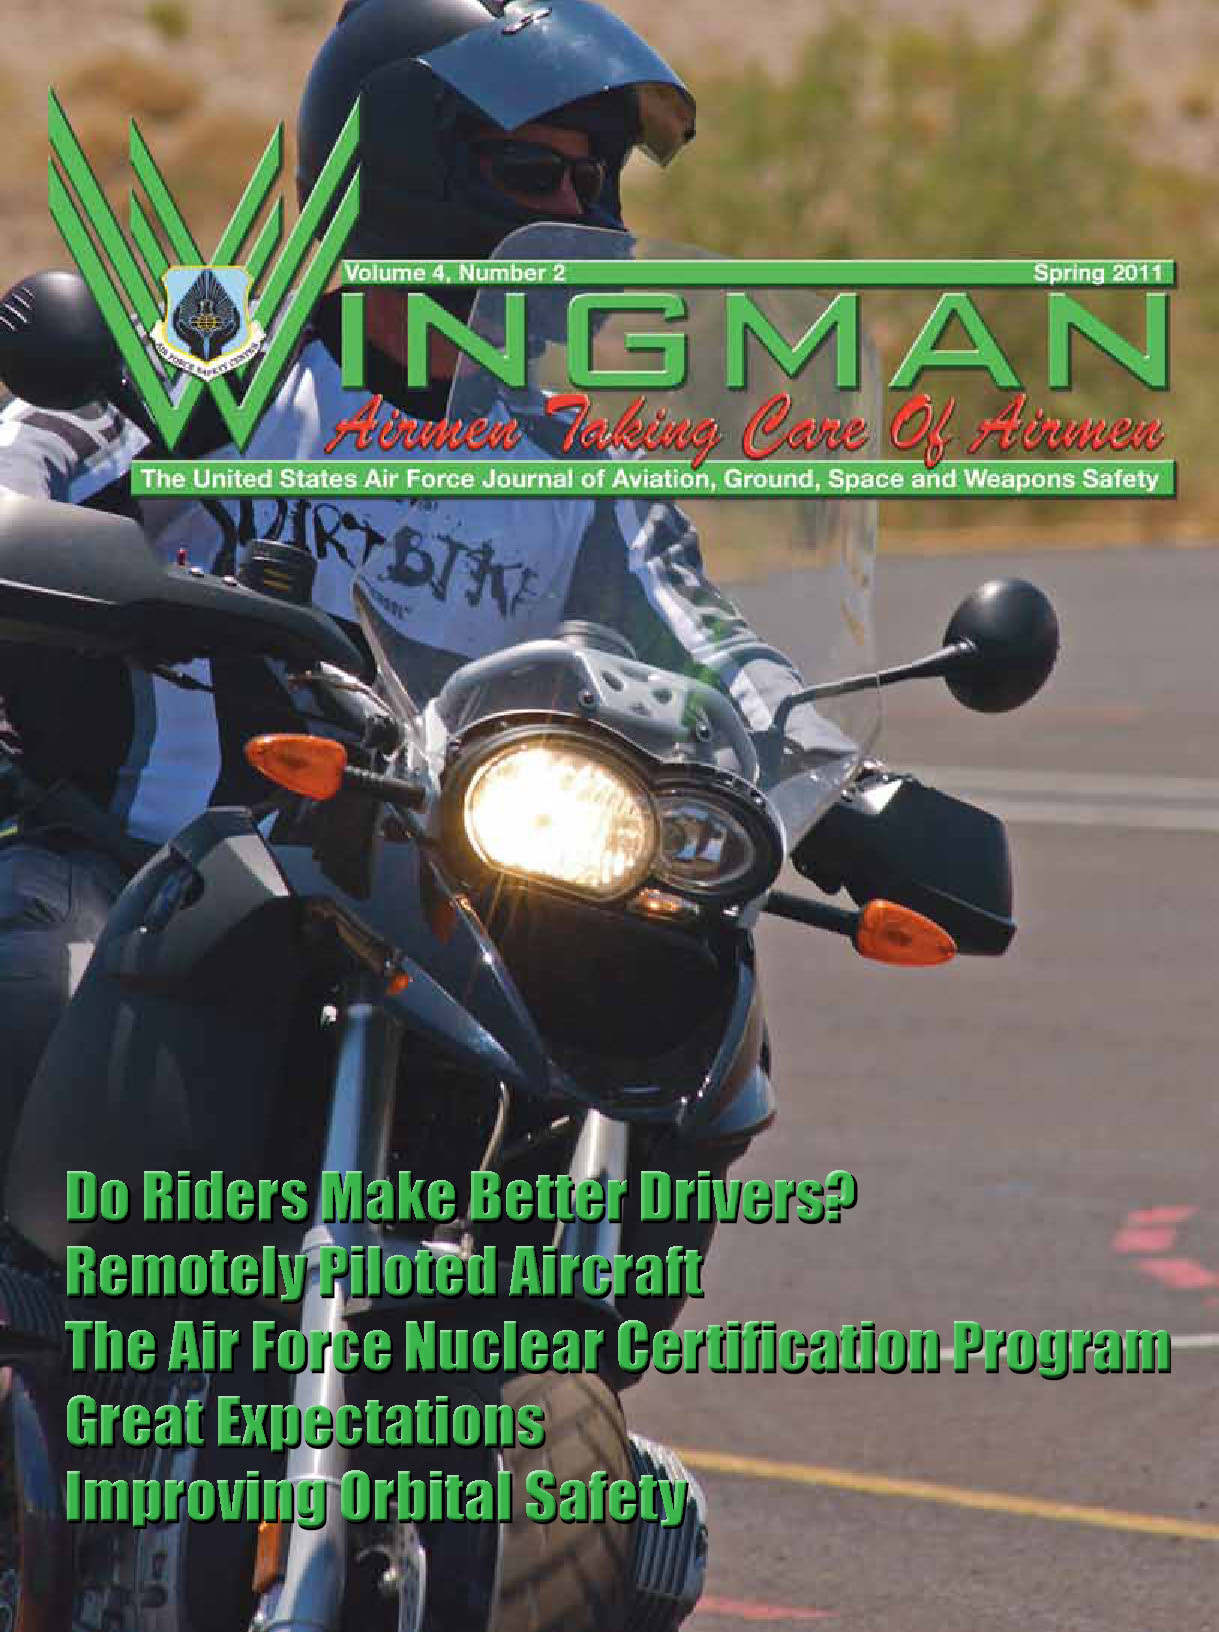 Wingman Magazine : Volume 4, Issue 2 ; S... by Greetan, Thomas